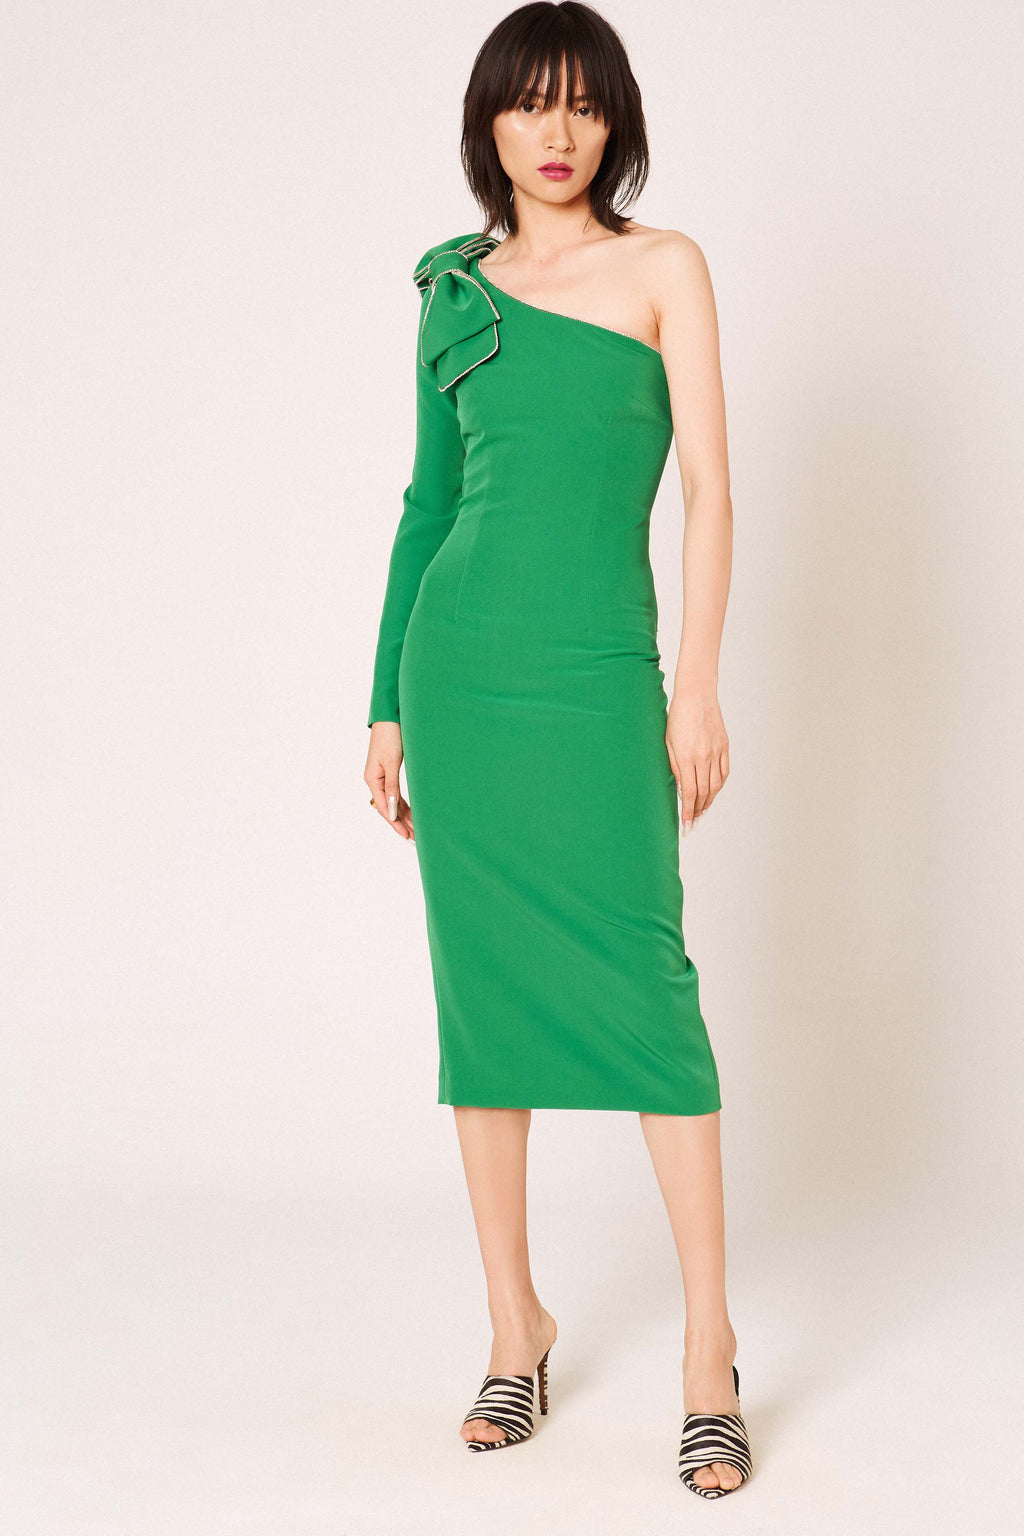 Okkinawa green dress - Etxart & Panno USA